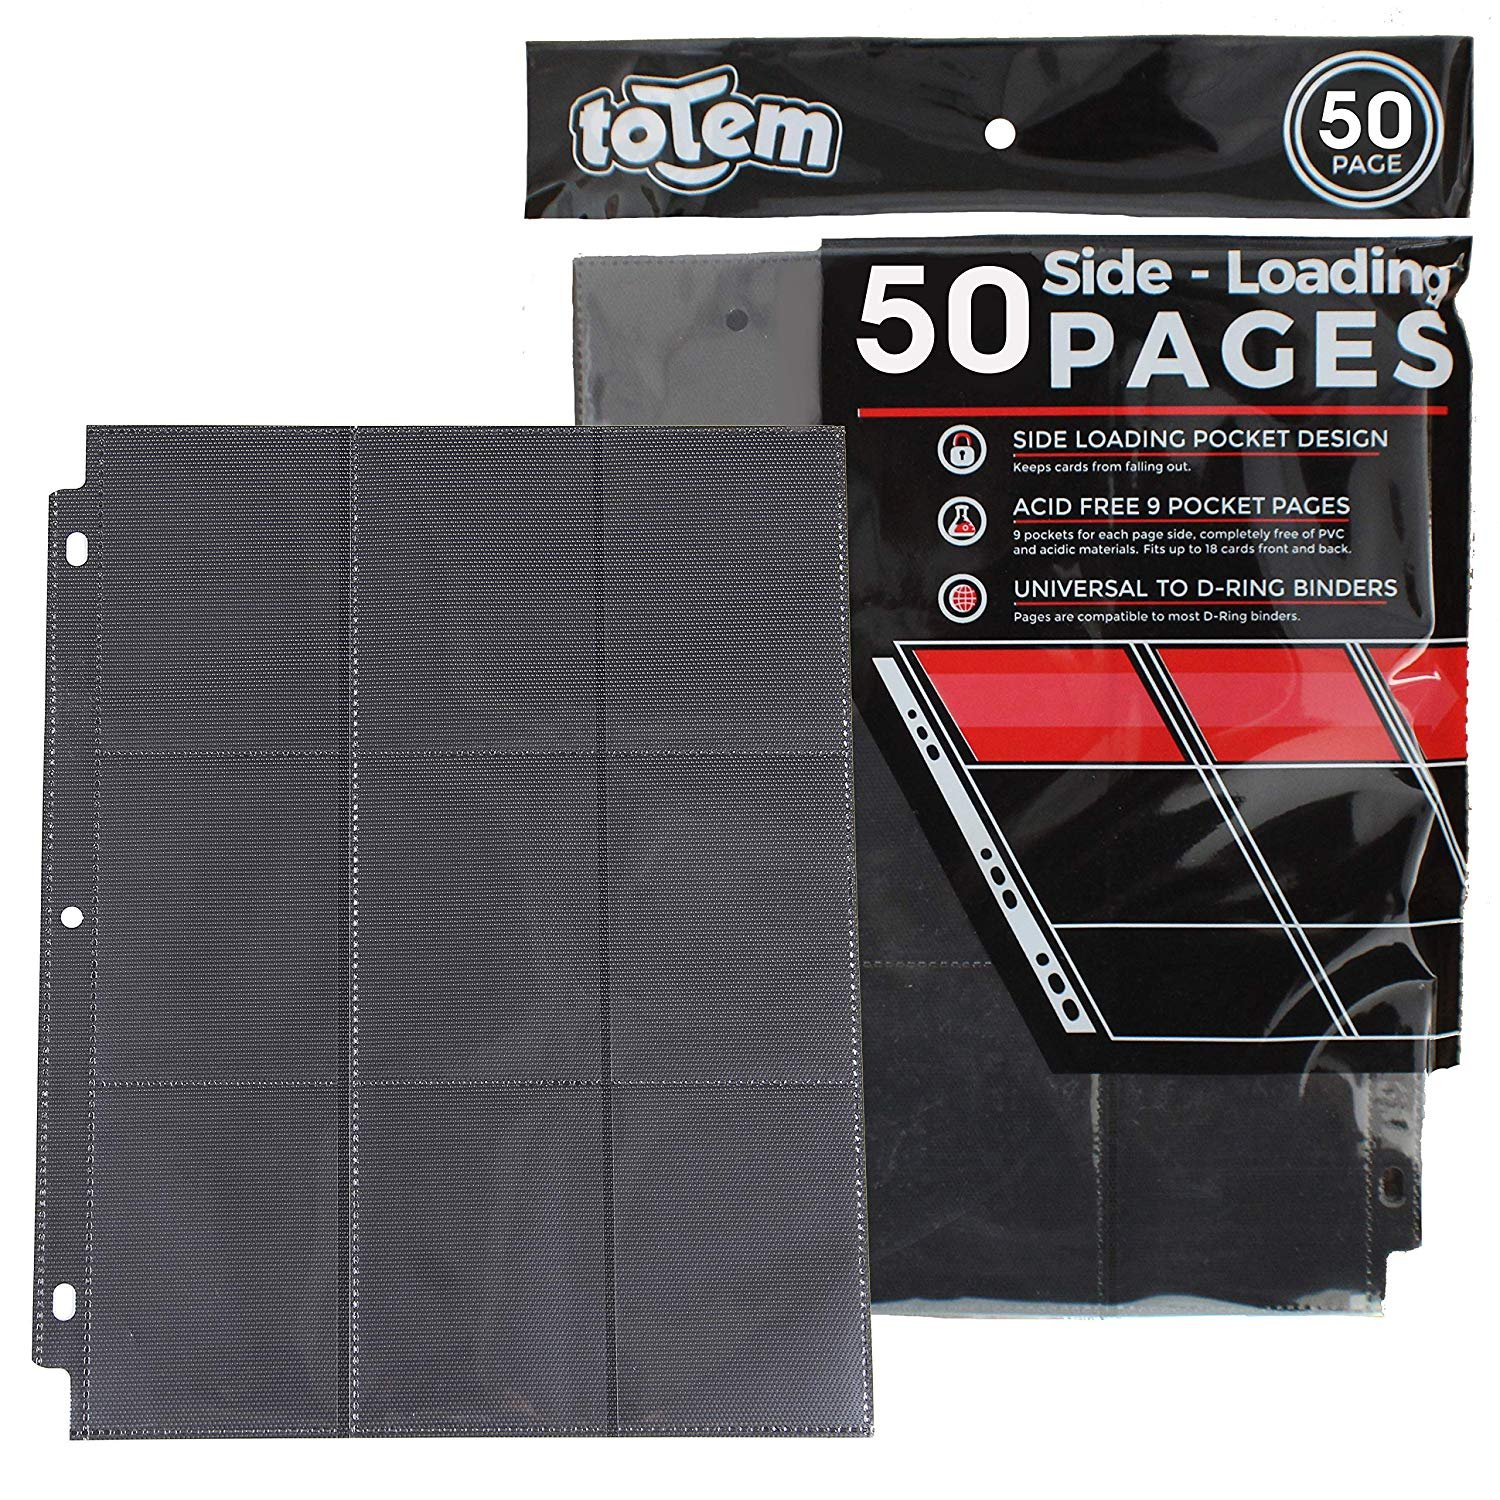 50 Side Load 9-Pocket Pages For Pokemon, Magic, YuGiOh